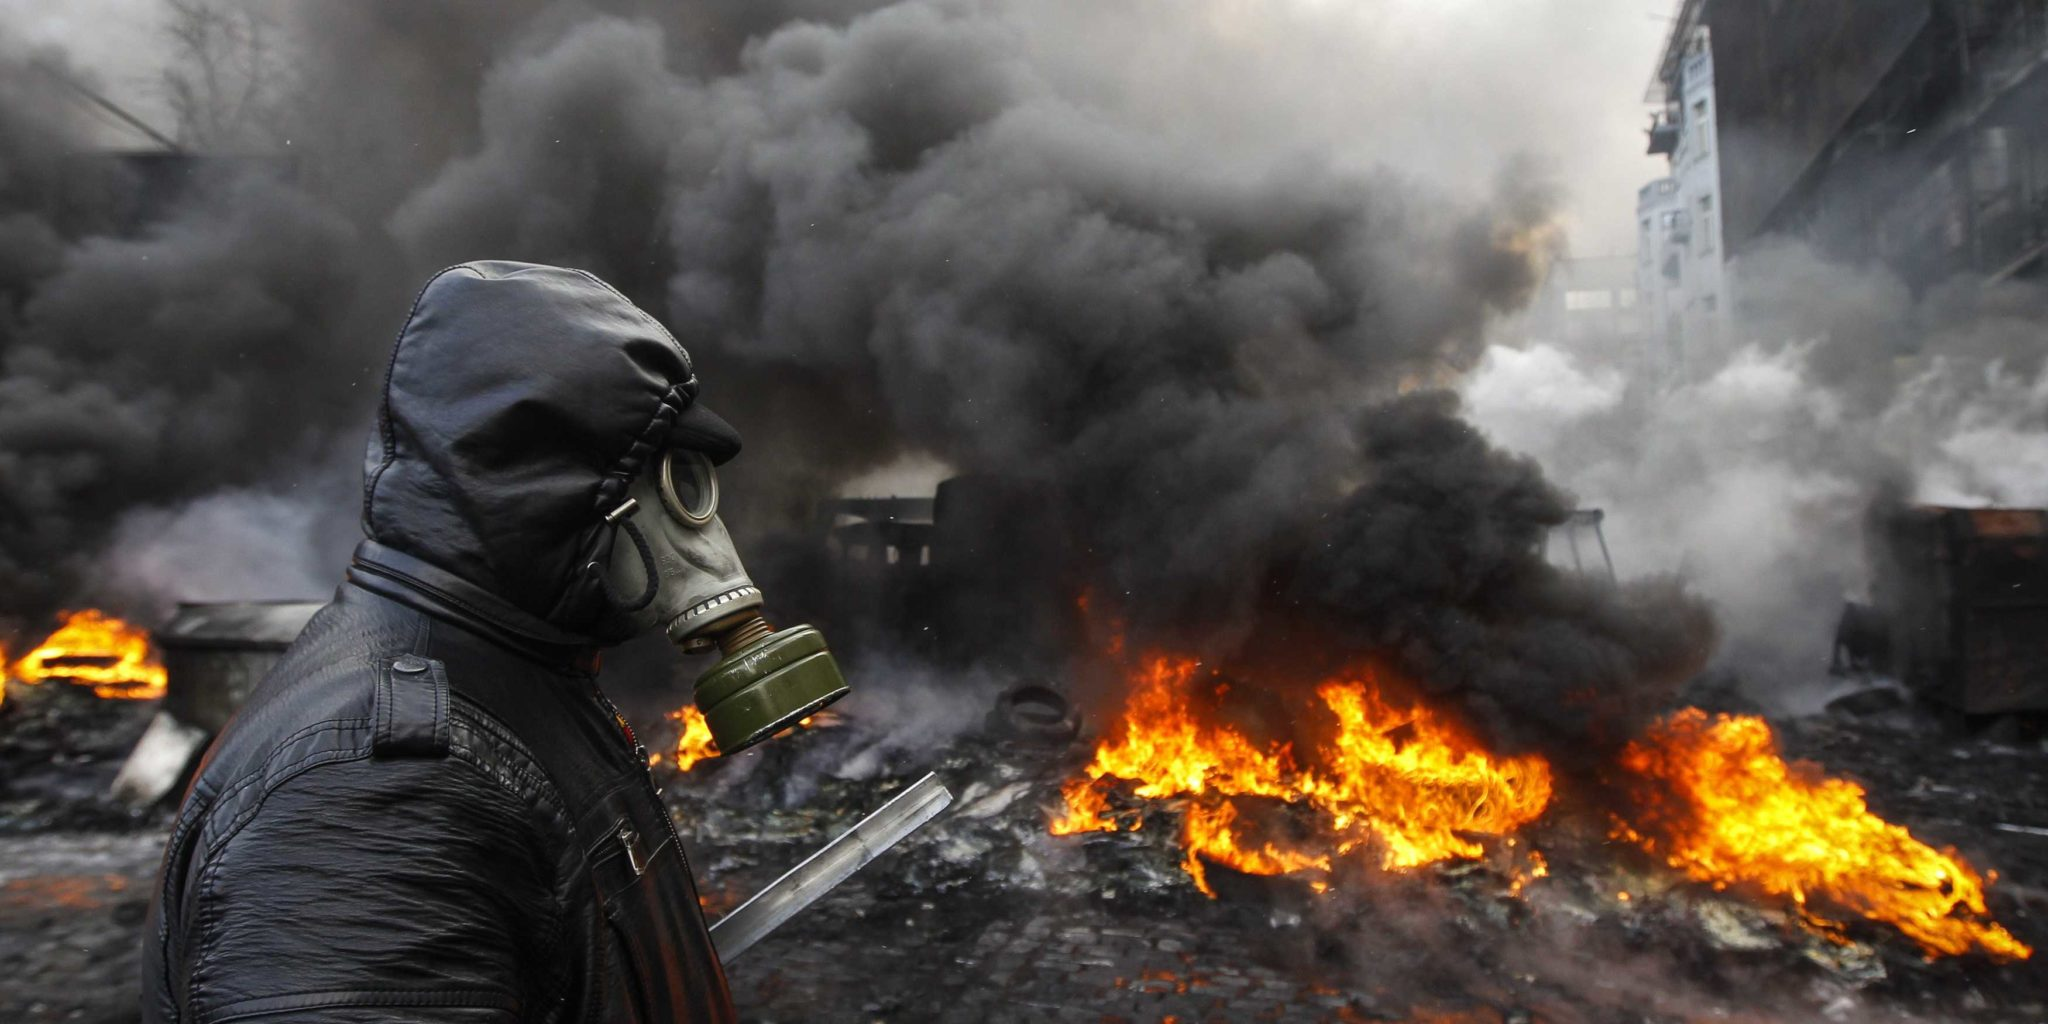 the crisis in ukraine essay Ukraine, a once member of the soviet unified organization called warsaw pact, is now being seized by it's former ally, russia it is one of the most tragic events involving militarism since the invasion of georgia in europe.